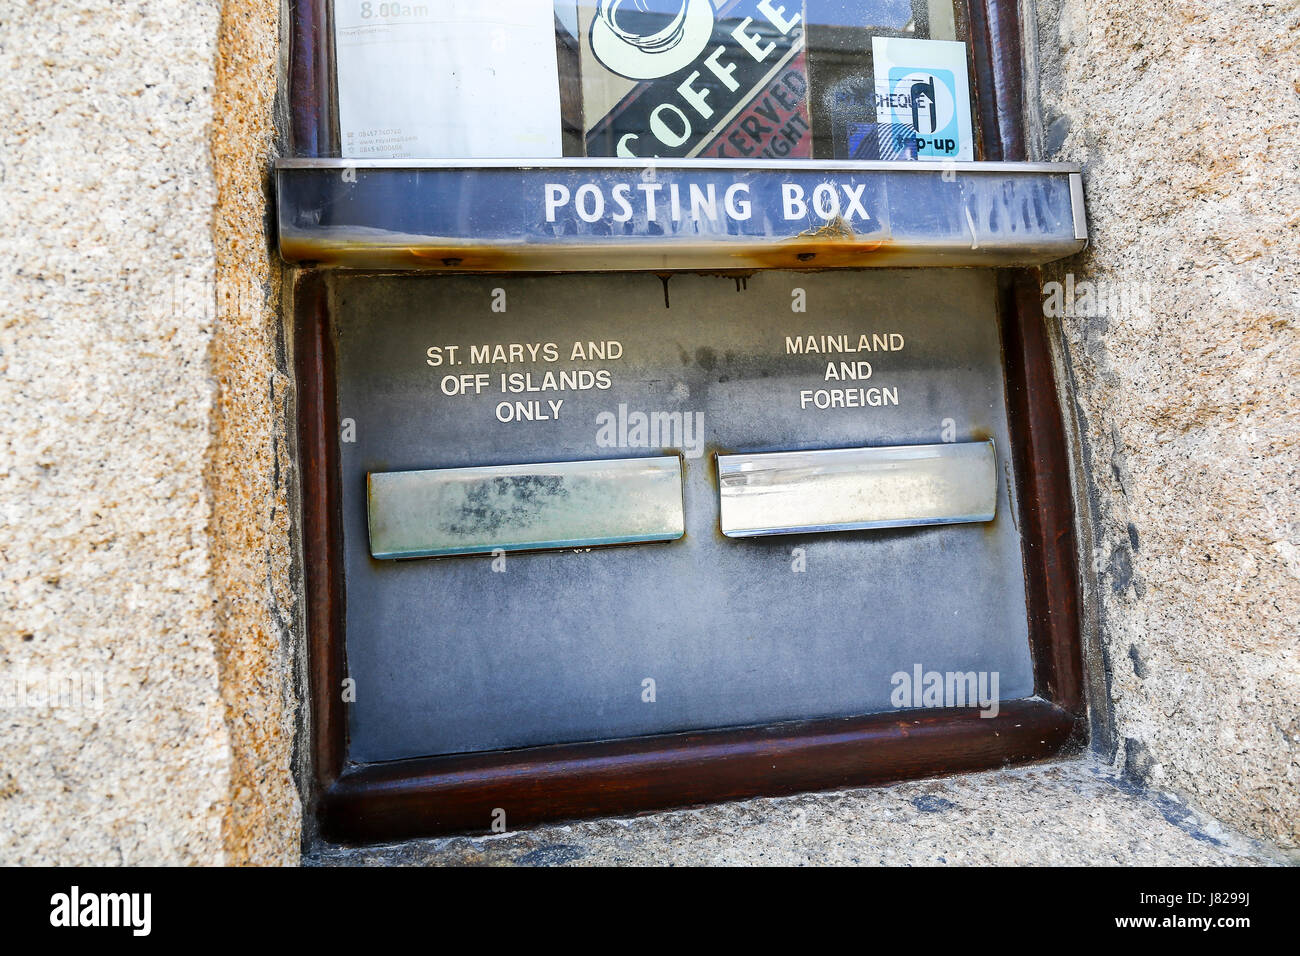 A posting or post box or letter box at Hugh Town, St. Mary's, Isles of Scilly, Cornwall, England, UK Stock Photo